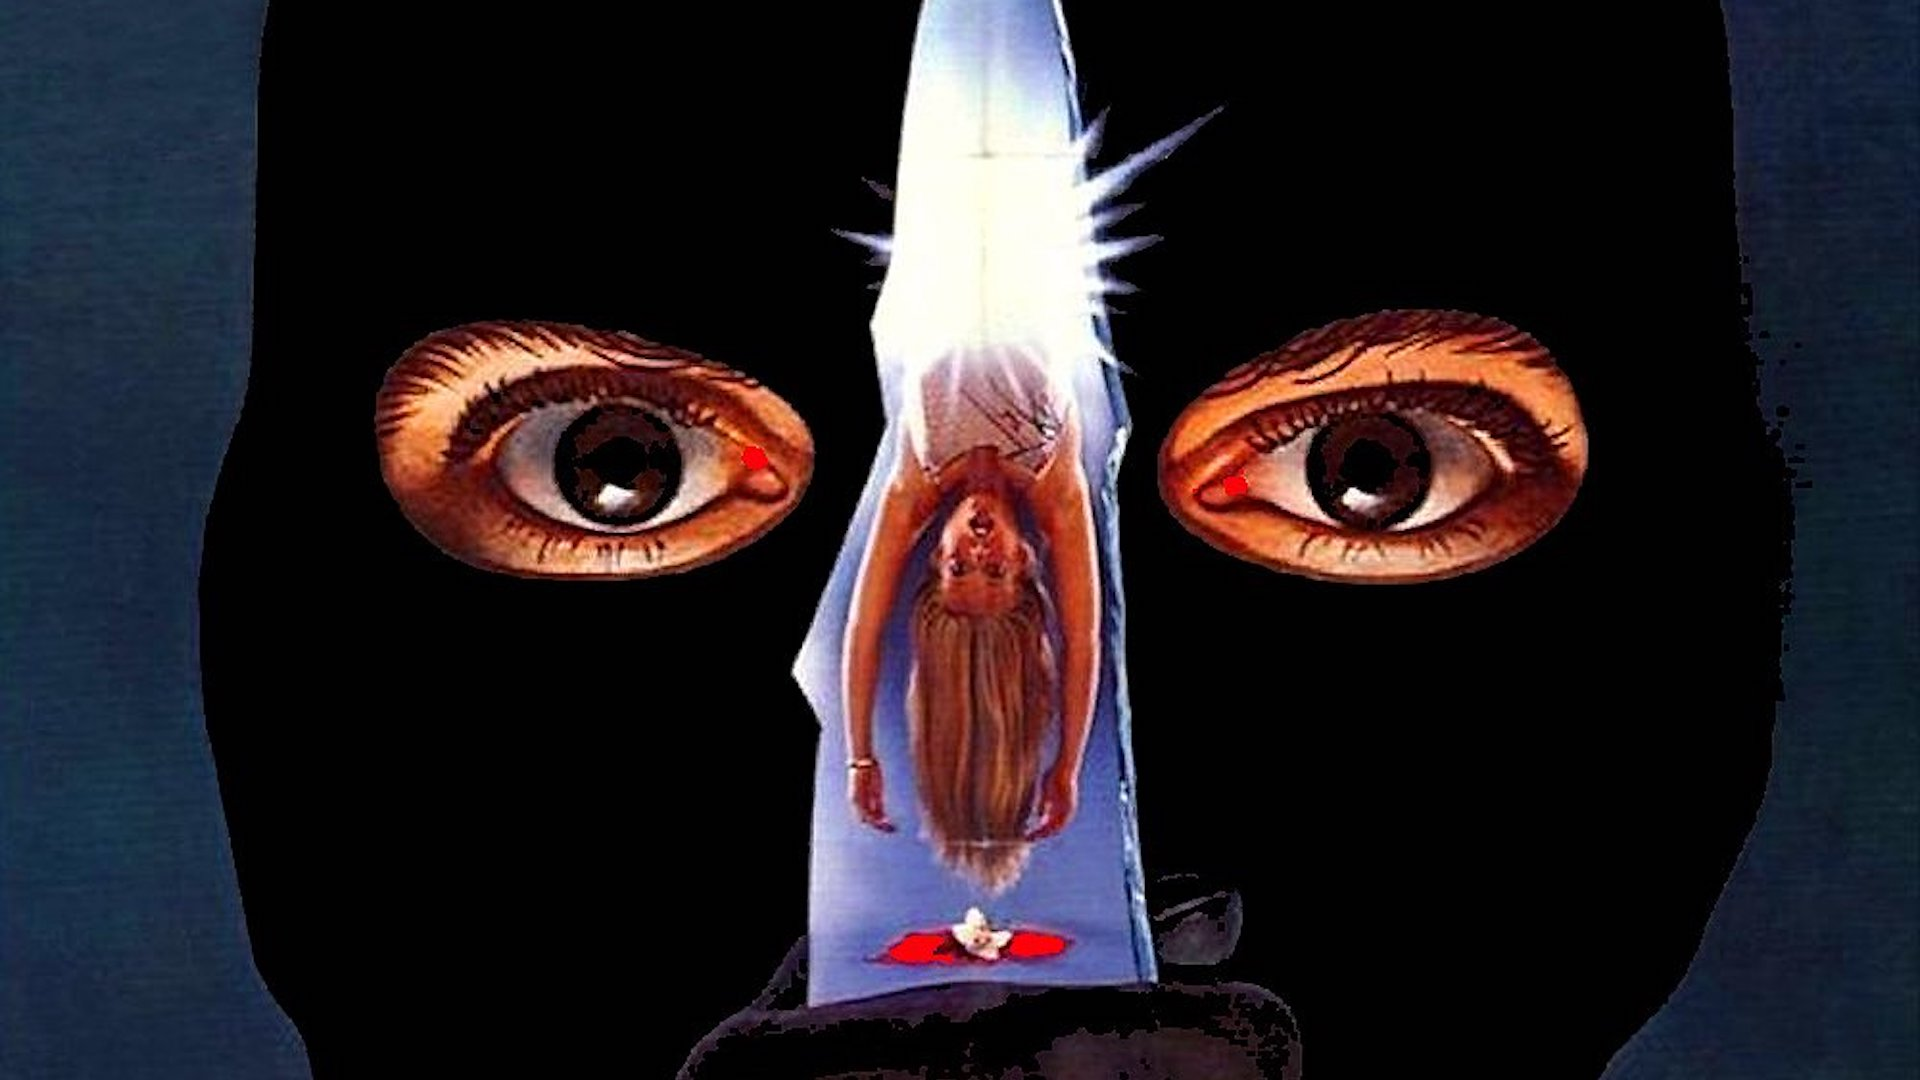 Prom Night (1980) poster detail - illustration of a man in a ski mask holding a knife in front of his face. a female body and blood is visible in the knife's reflection